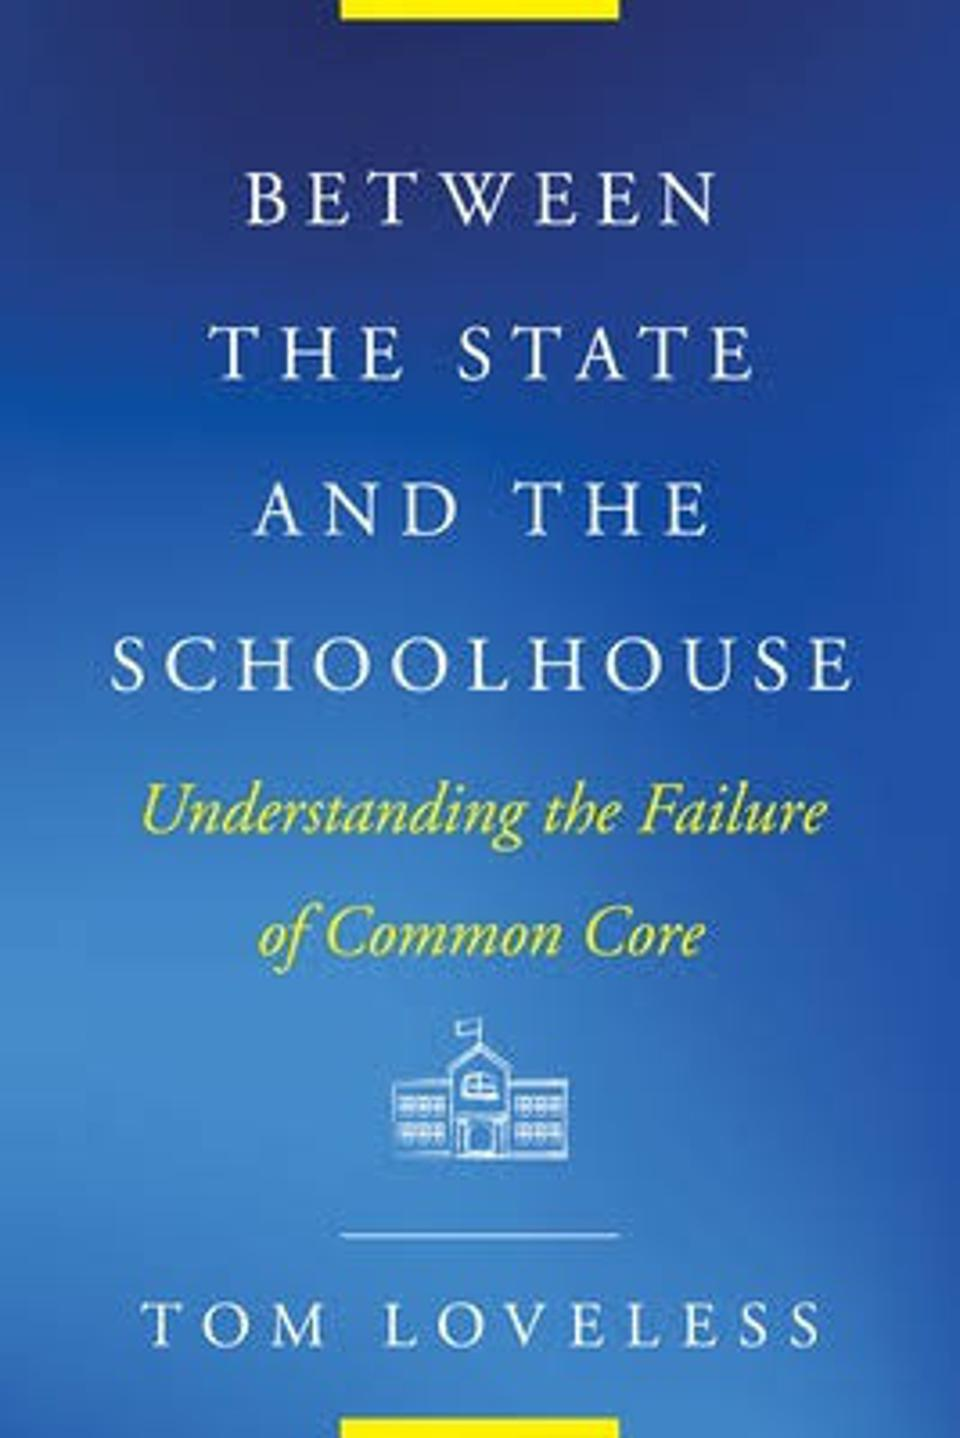 Cover of the book Between the state and the schoolhouse